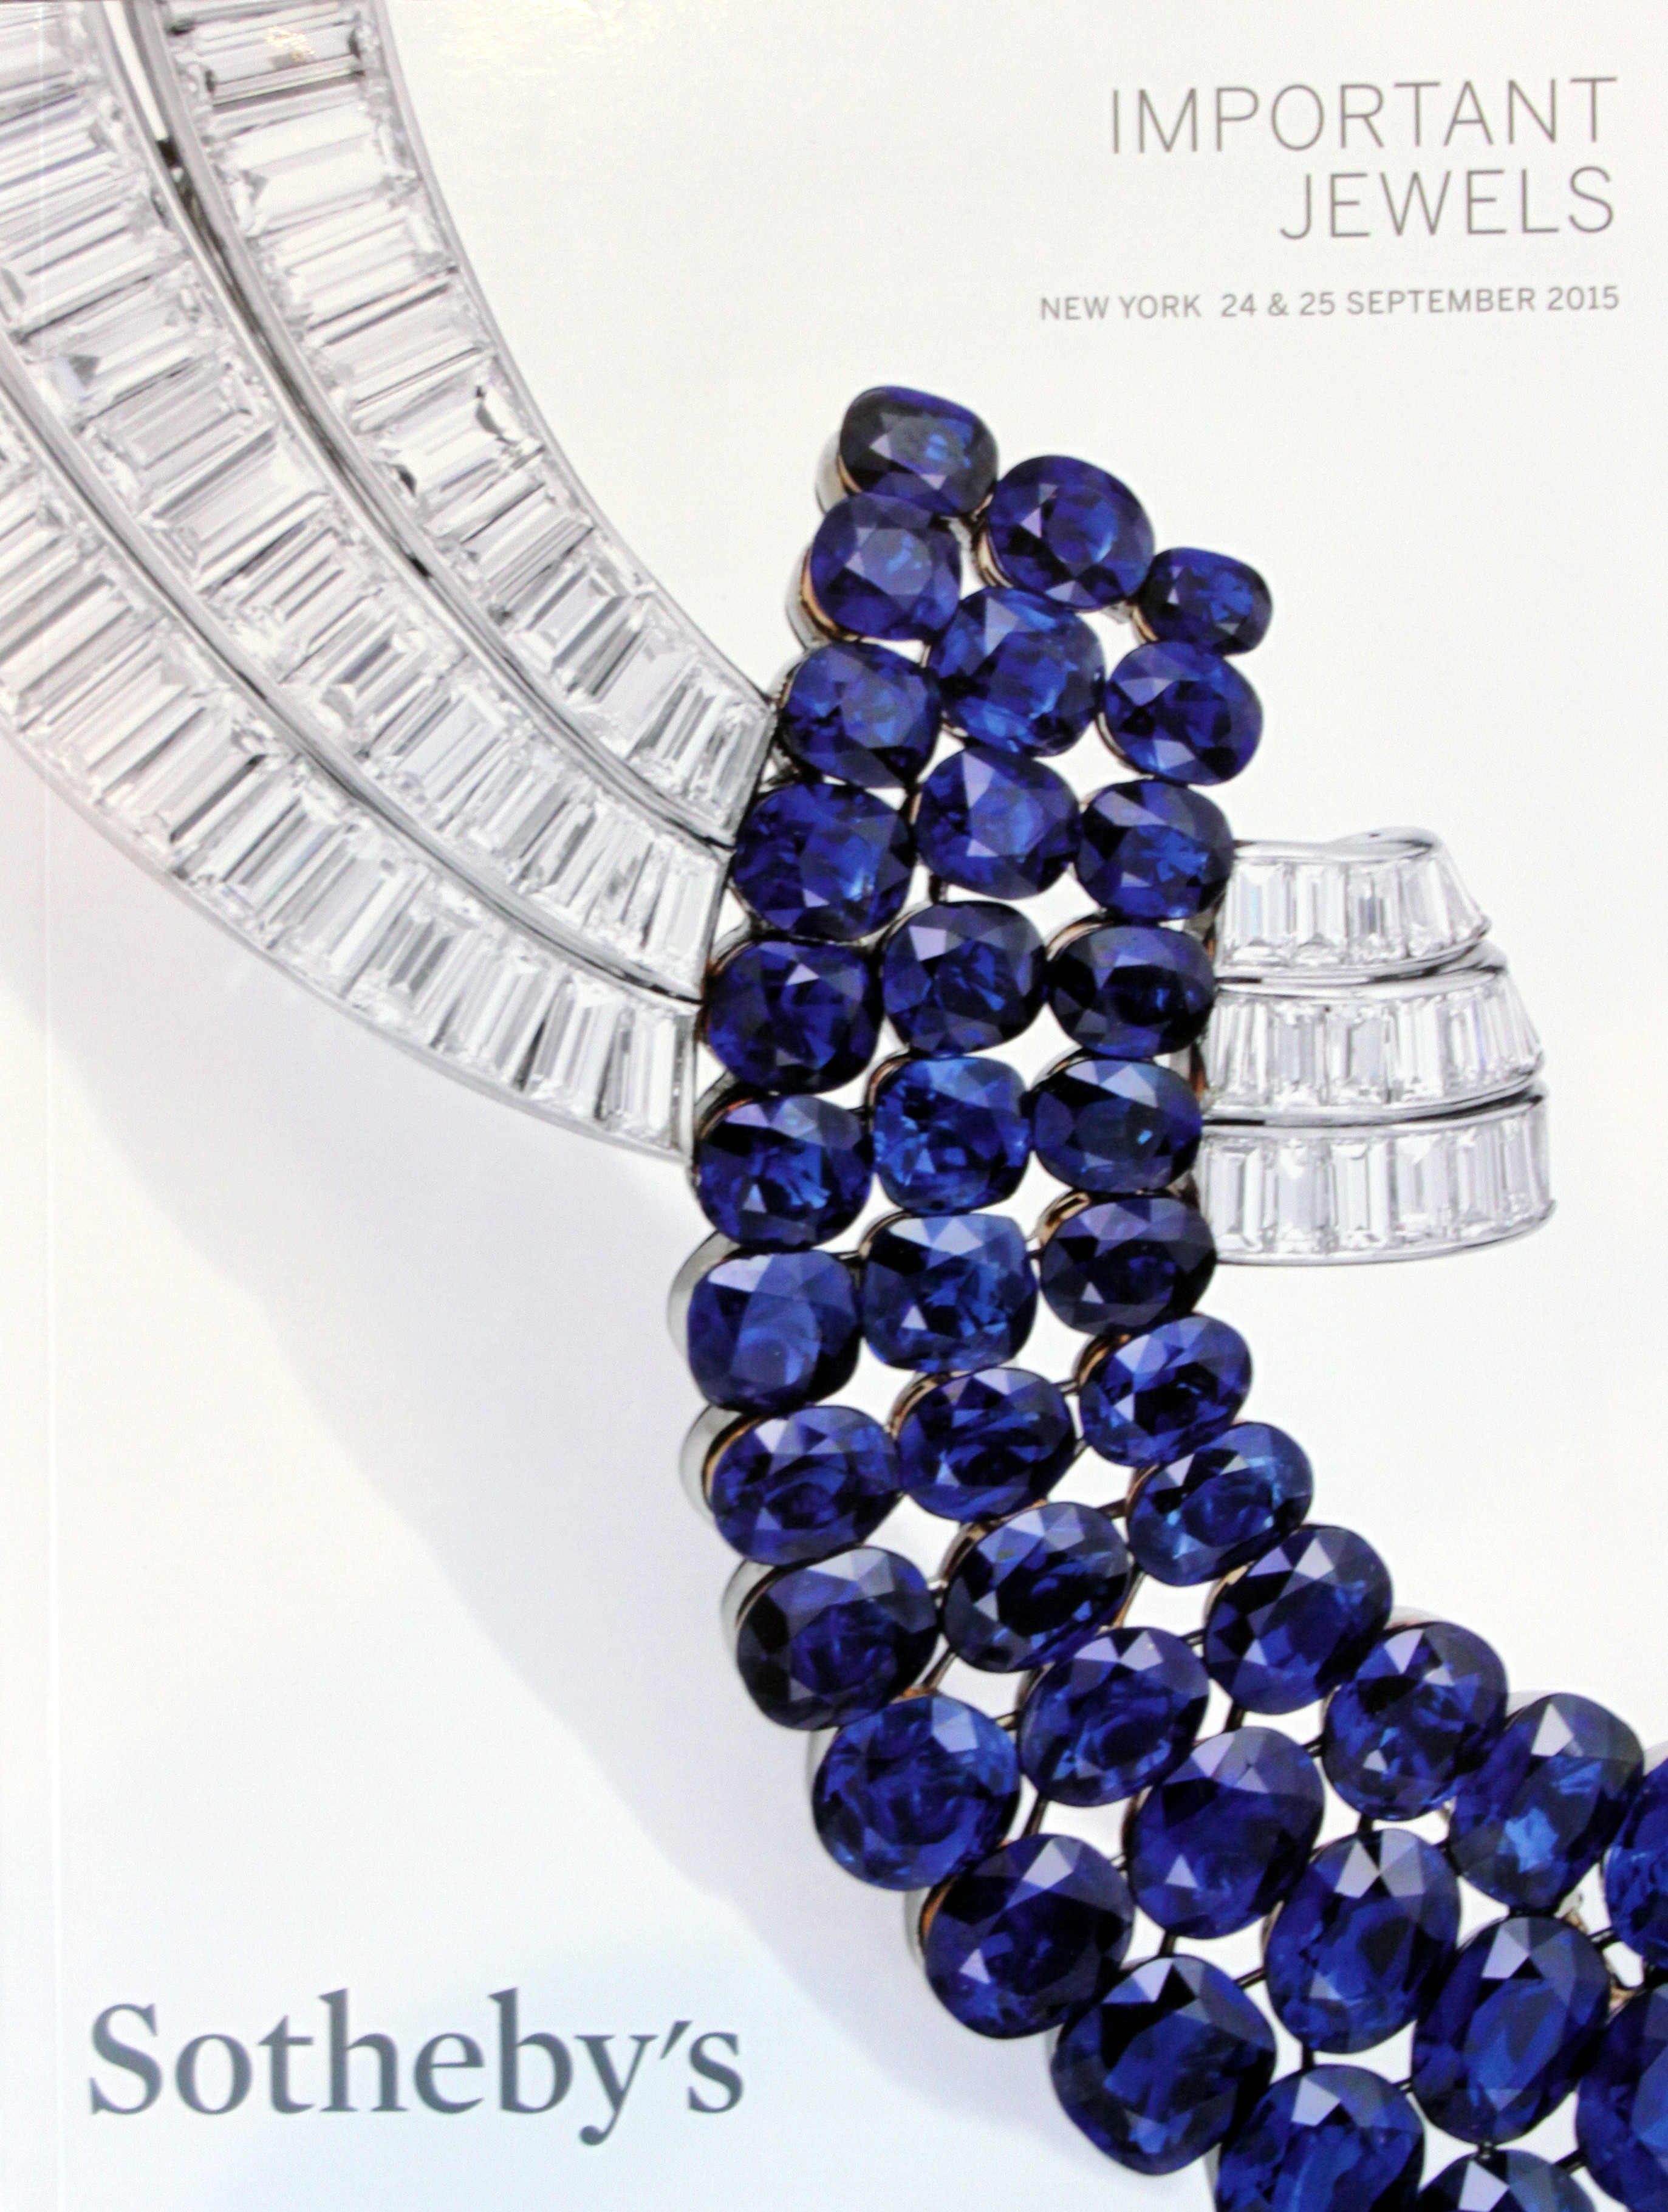 ih sothebys new york important jewels 92415 sale code